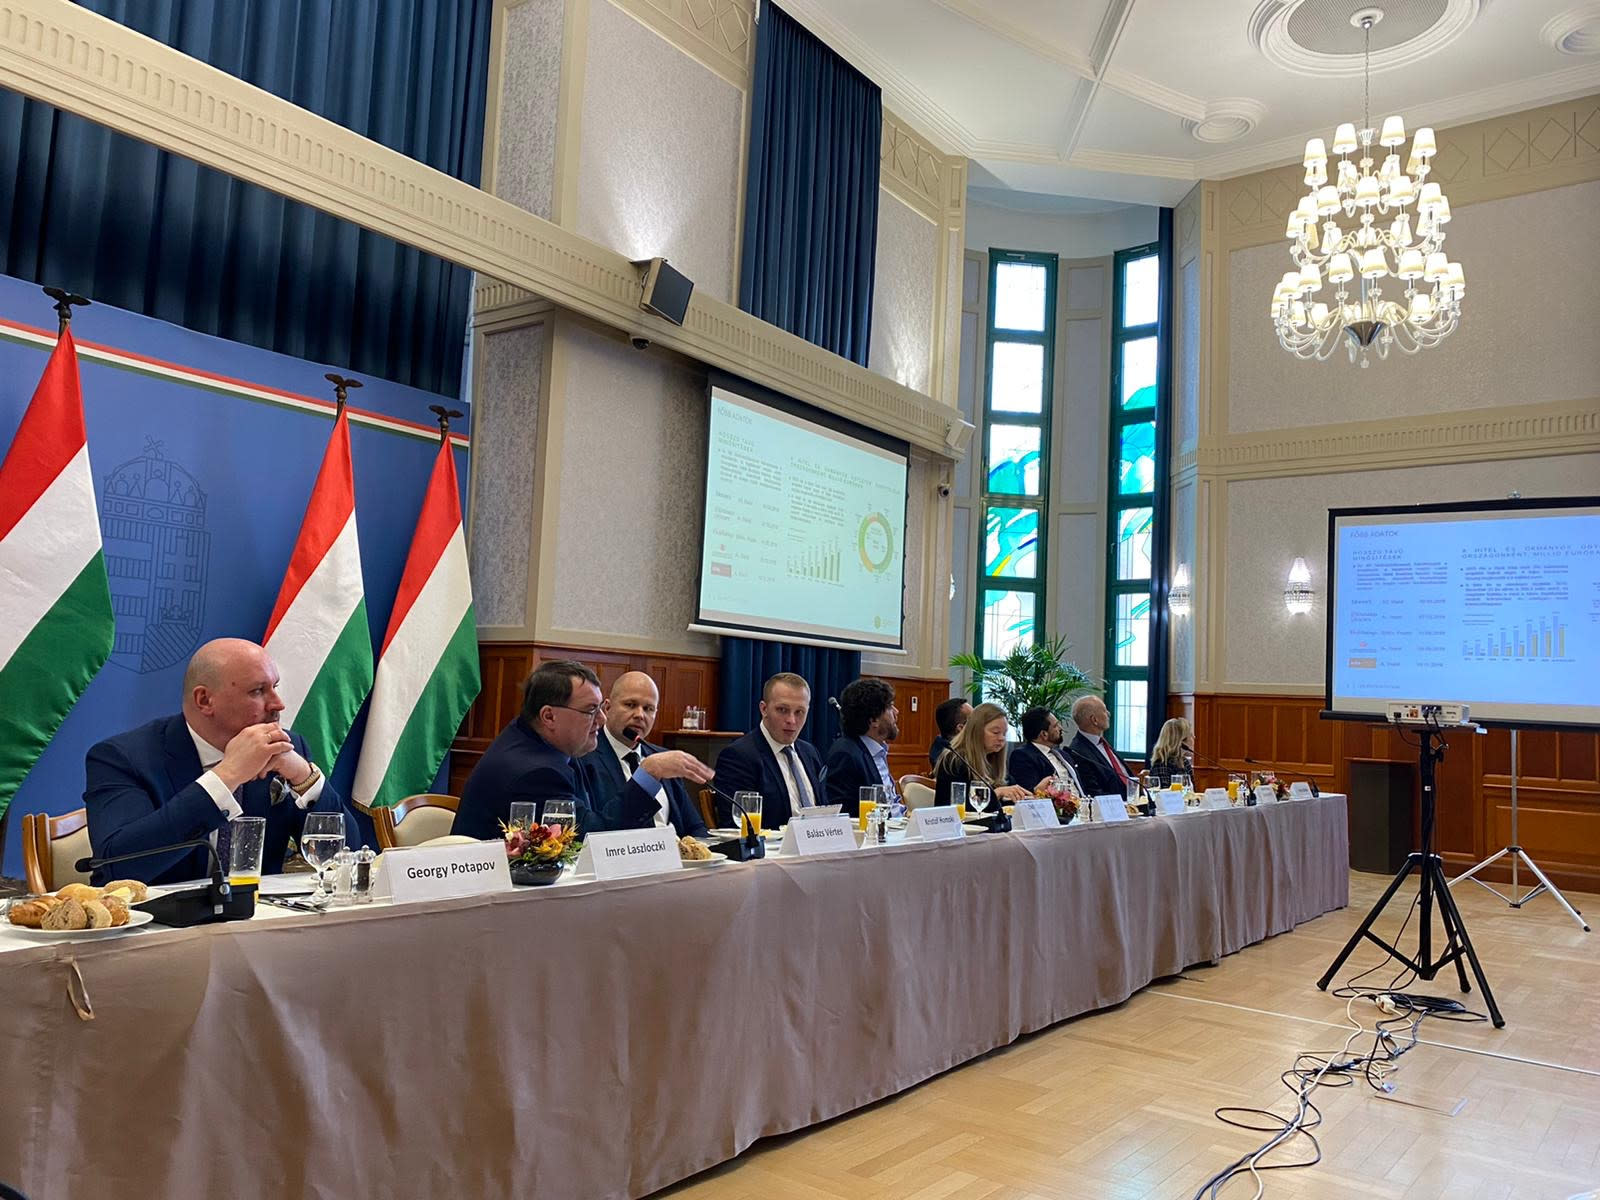 Supported by the Hungarian Ministry of Foreign Affairs and Trade IIB held a presentation for Hungarian exporters